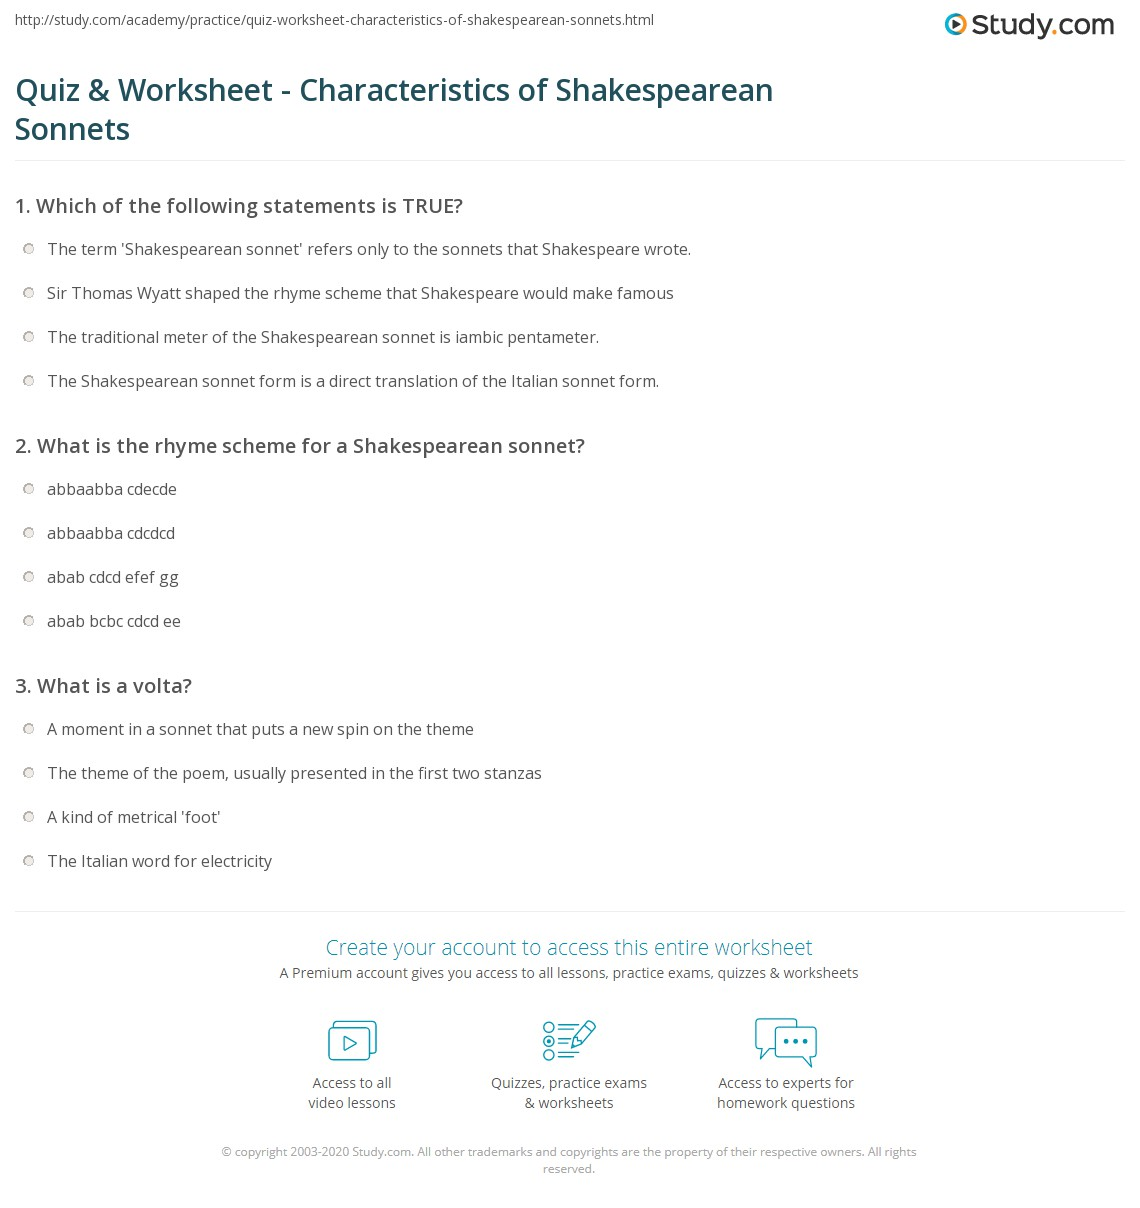 Printables Sonnet Worksheet quiz worksheet characteristics of shakespearean sonnets print sonnet form structure worksheet